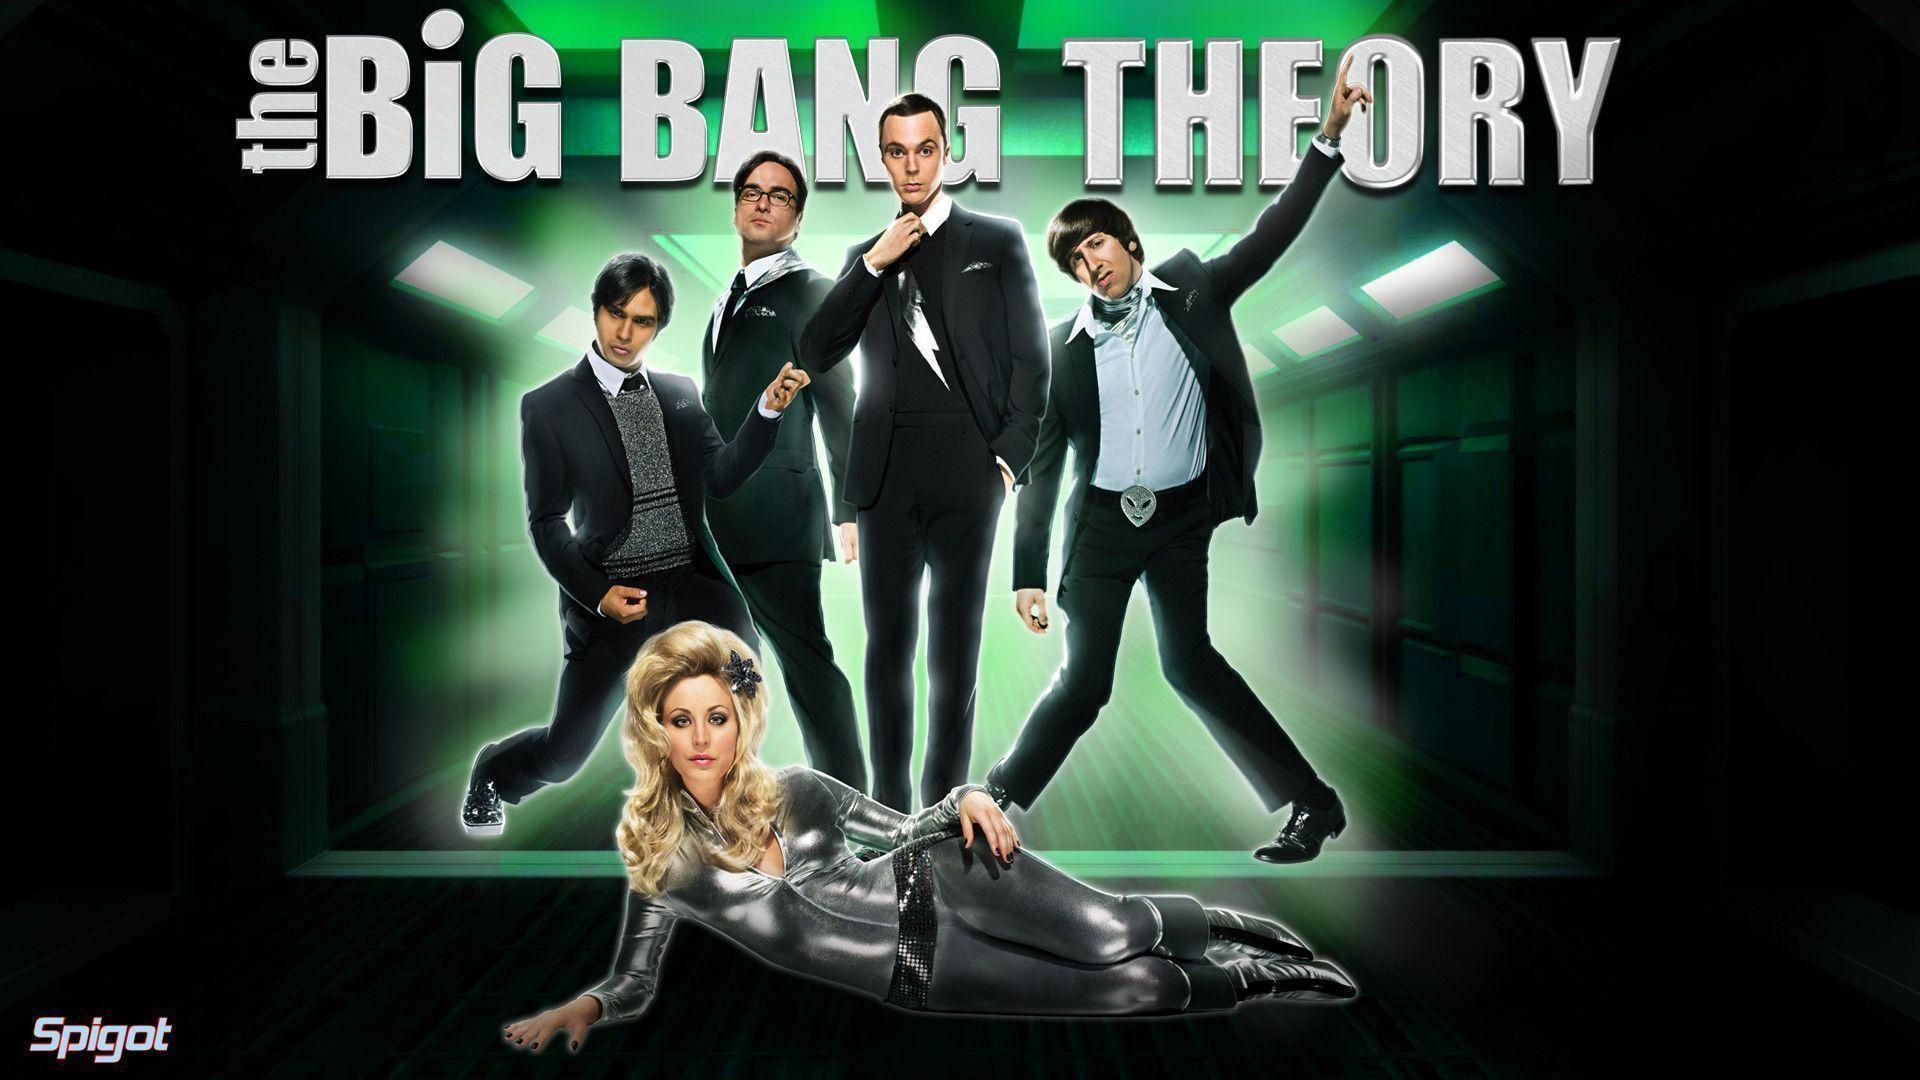 M Theory Wallpaper The Big Bang Theory Wa...